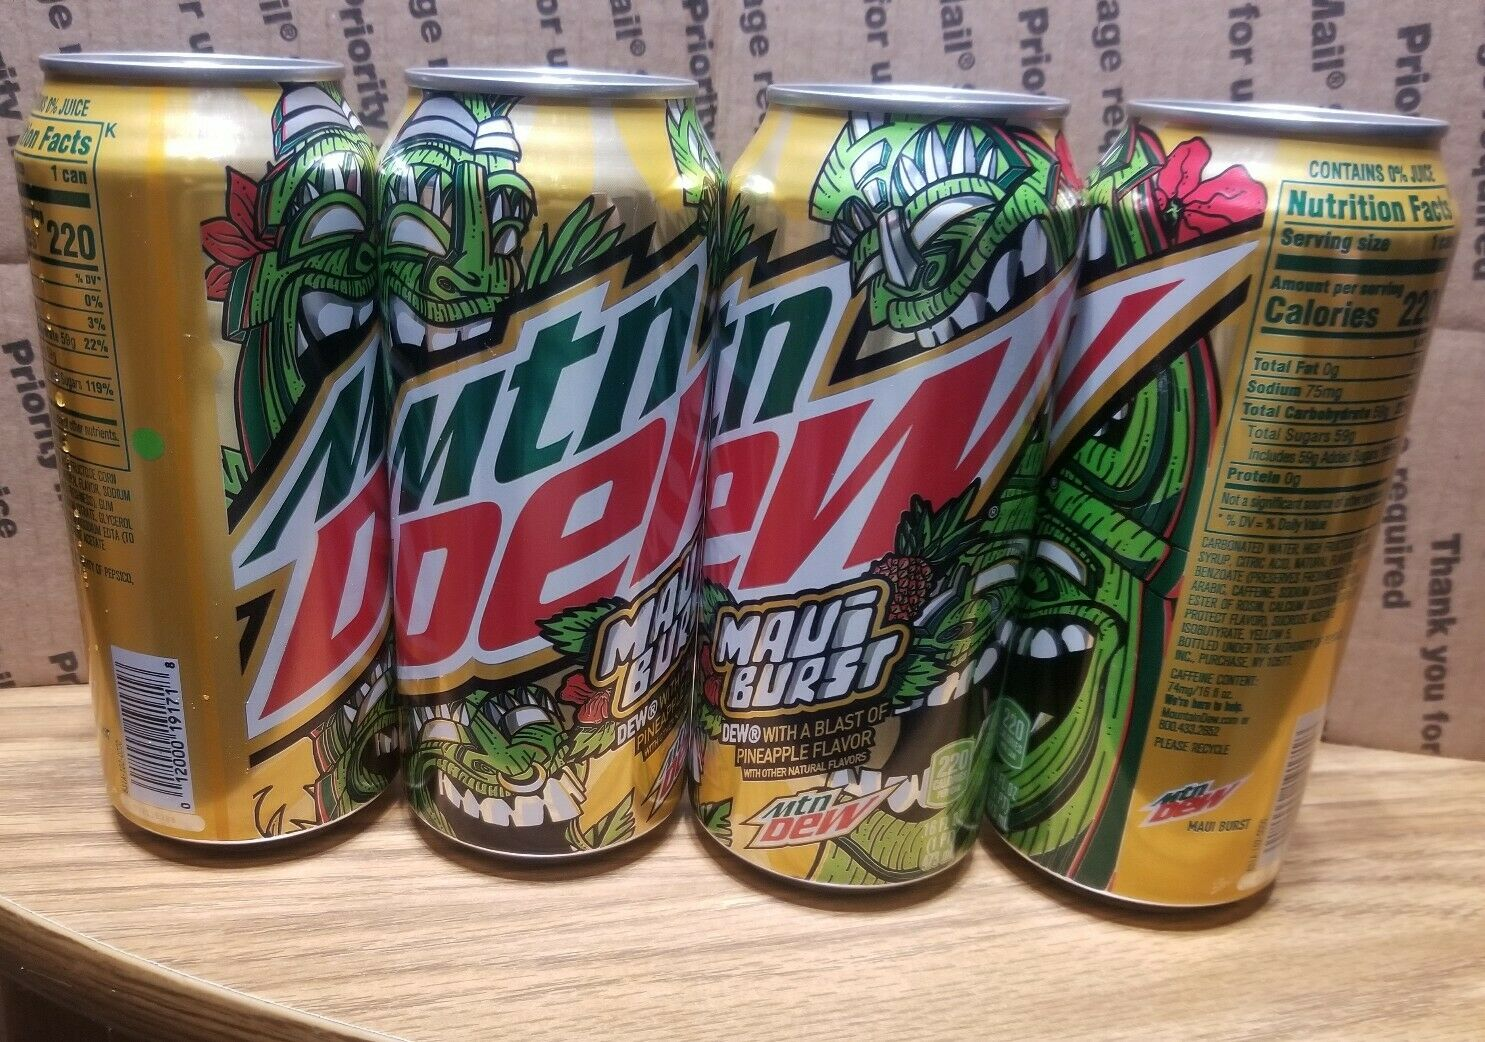 Lesbian mountain dew and anal